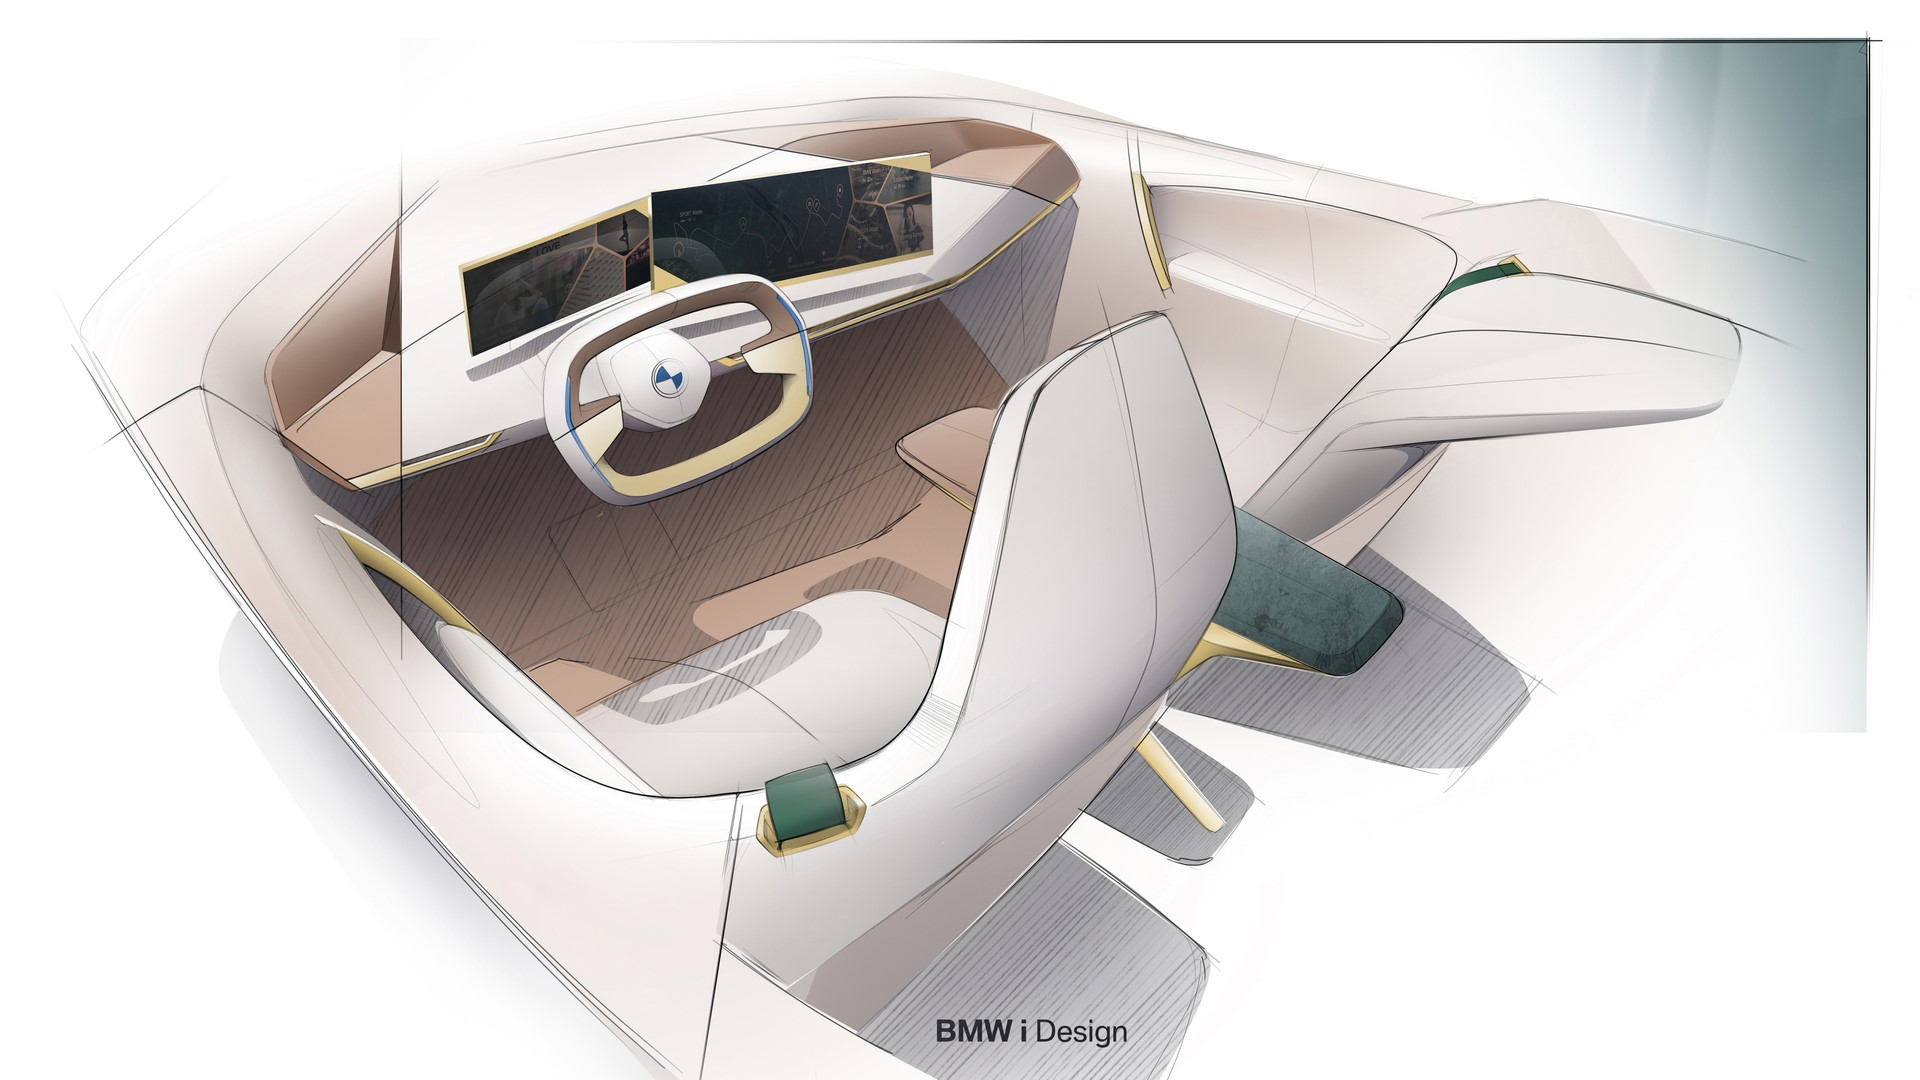 BMW Vision iNext Concept (99)